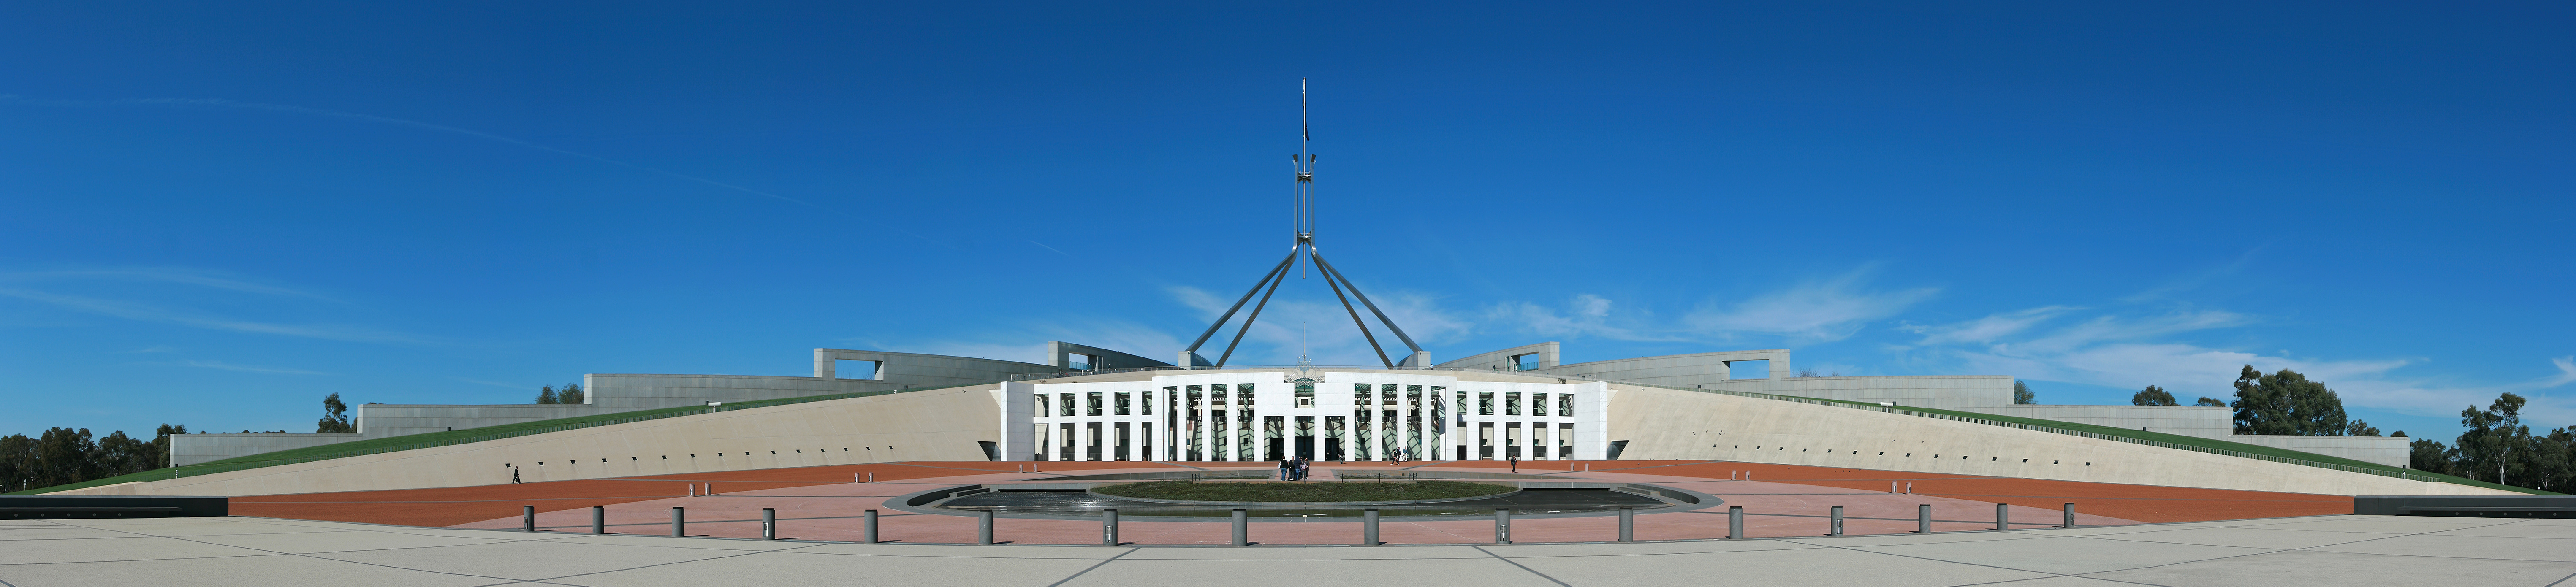 Parliament_House,_Canberra,_.